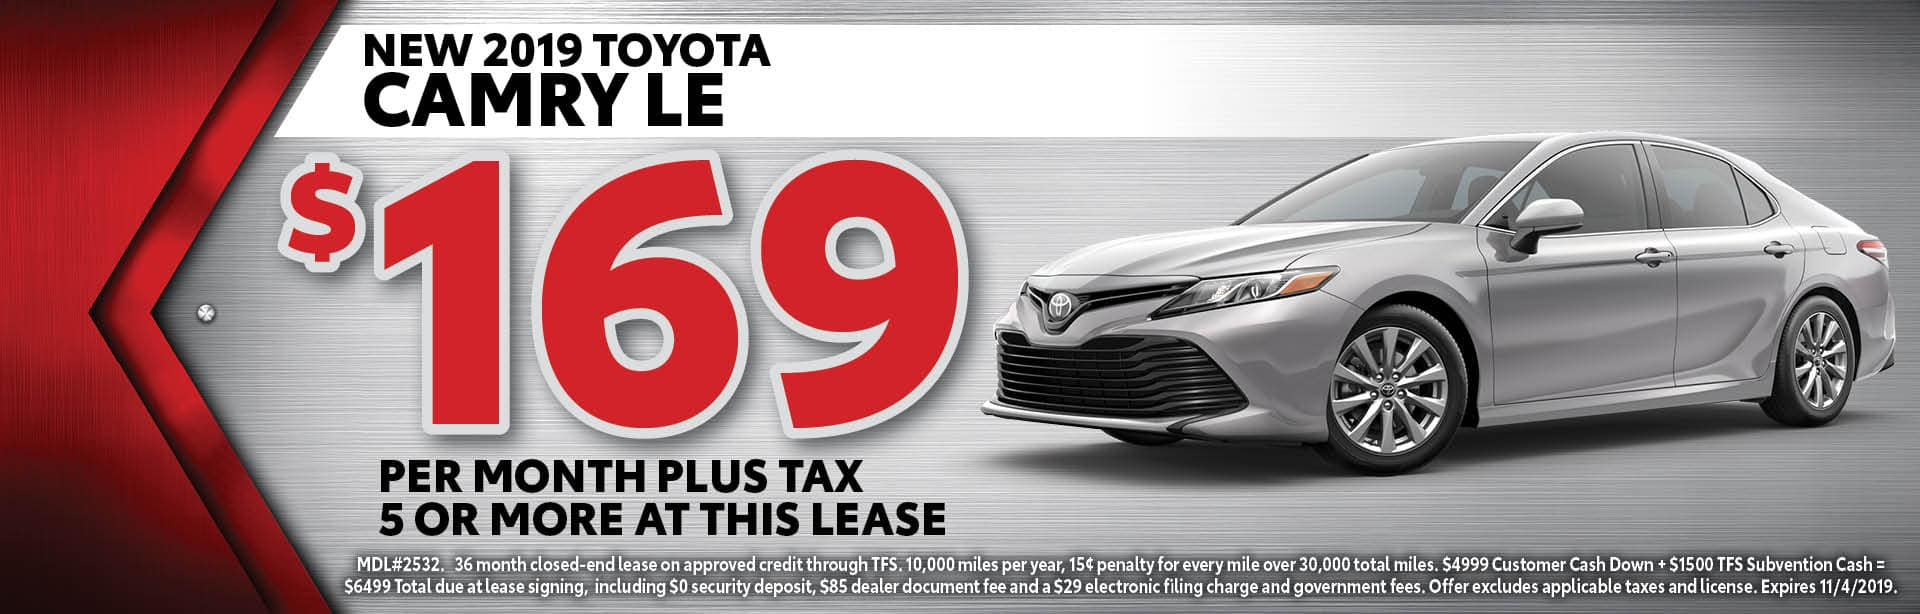 2019 Camry LE offer